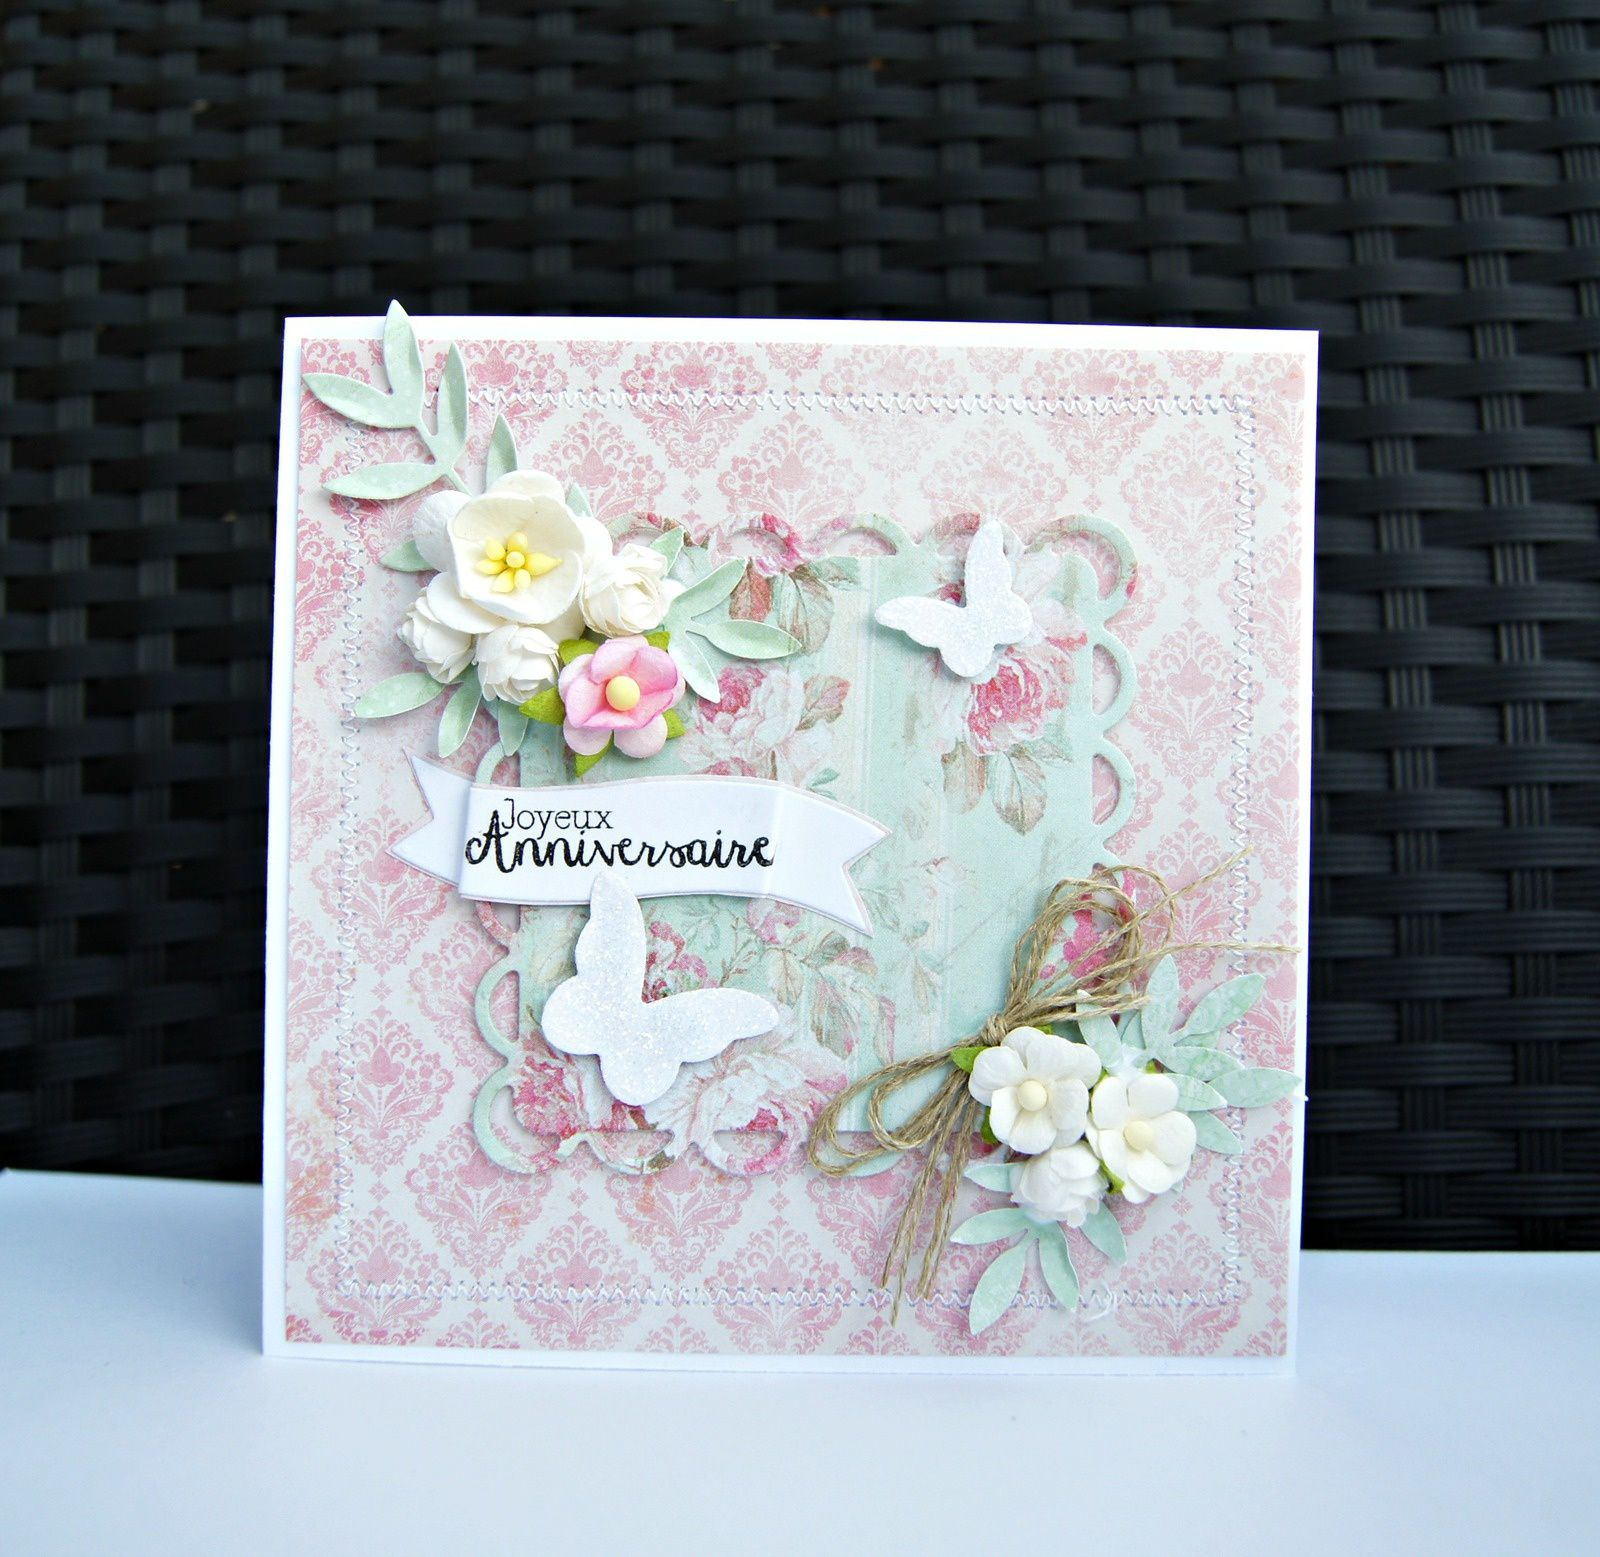 World card making Day : défi Shabby